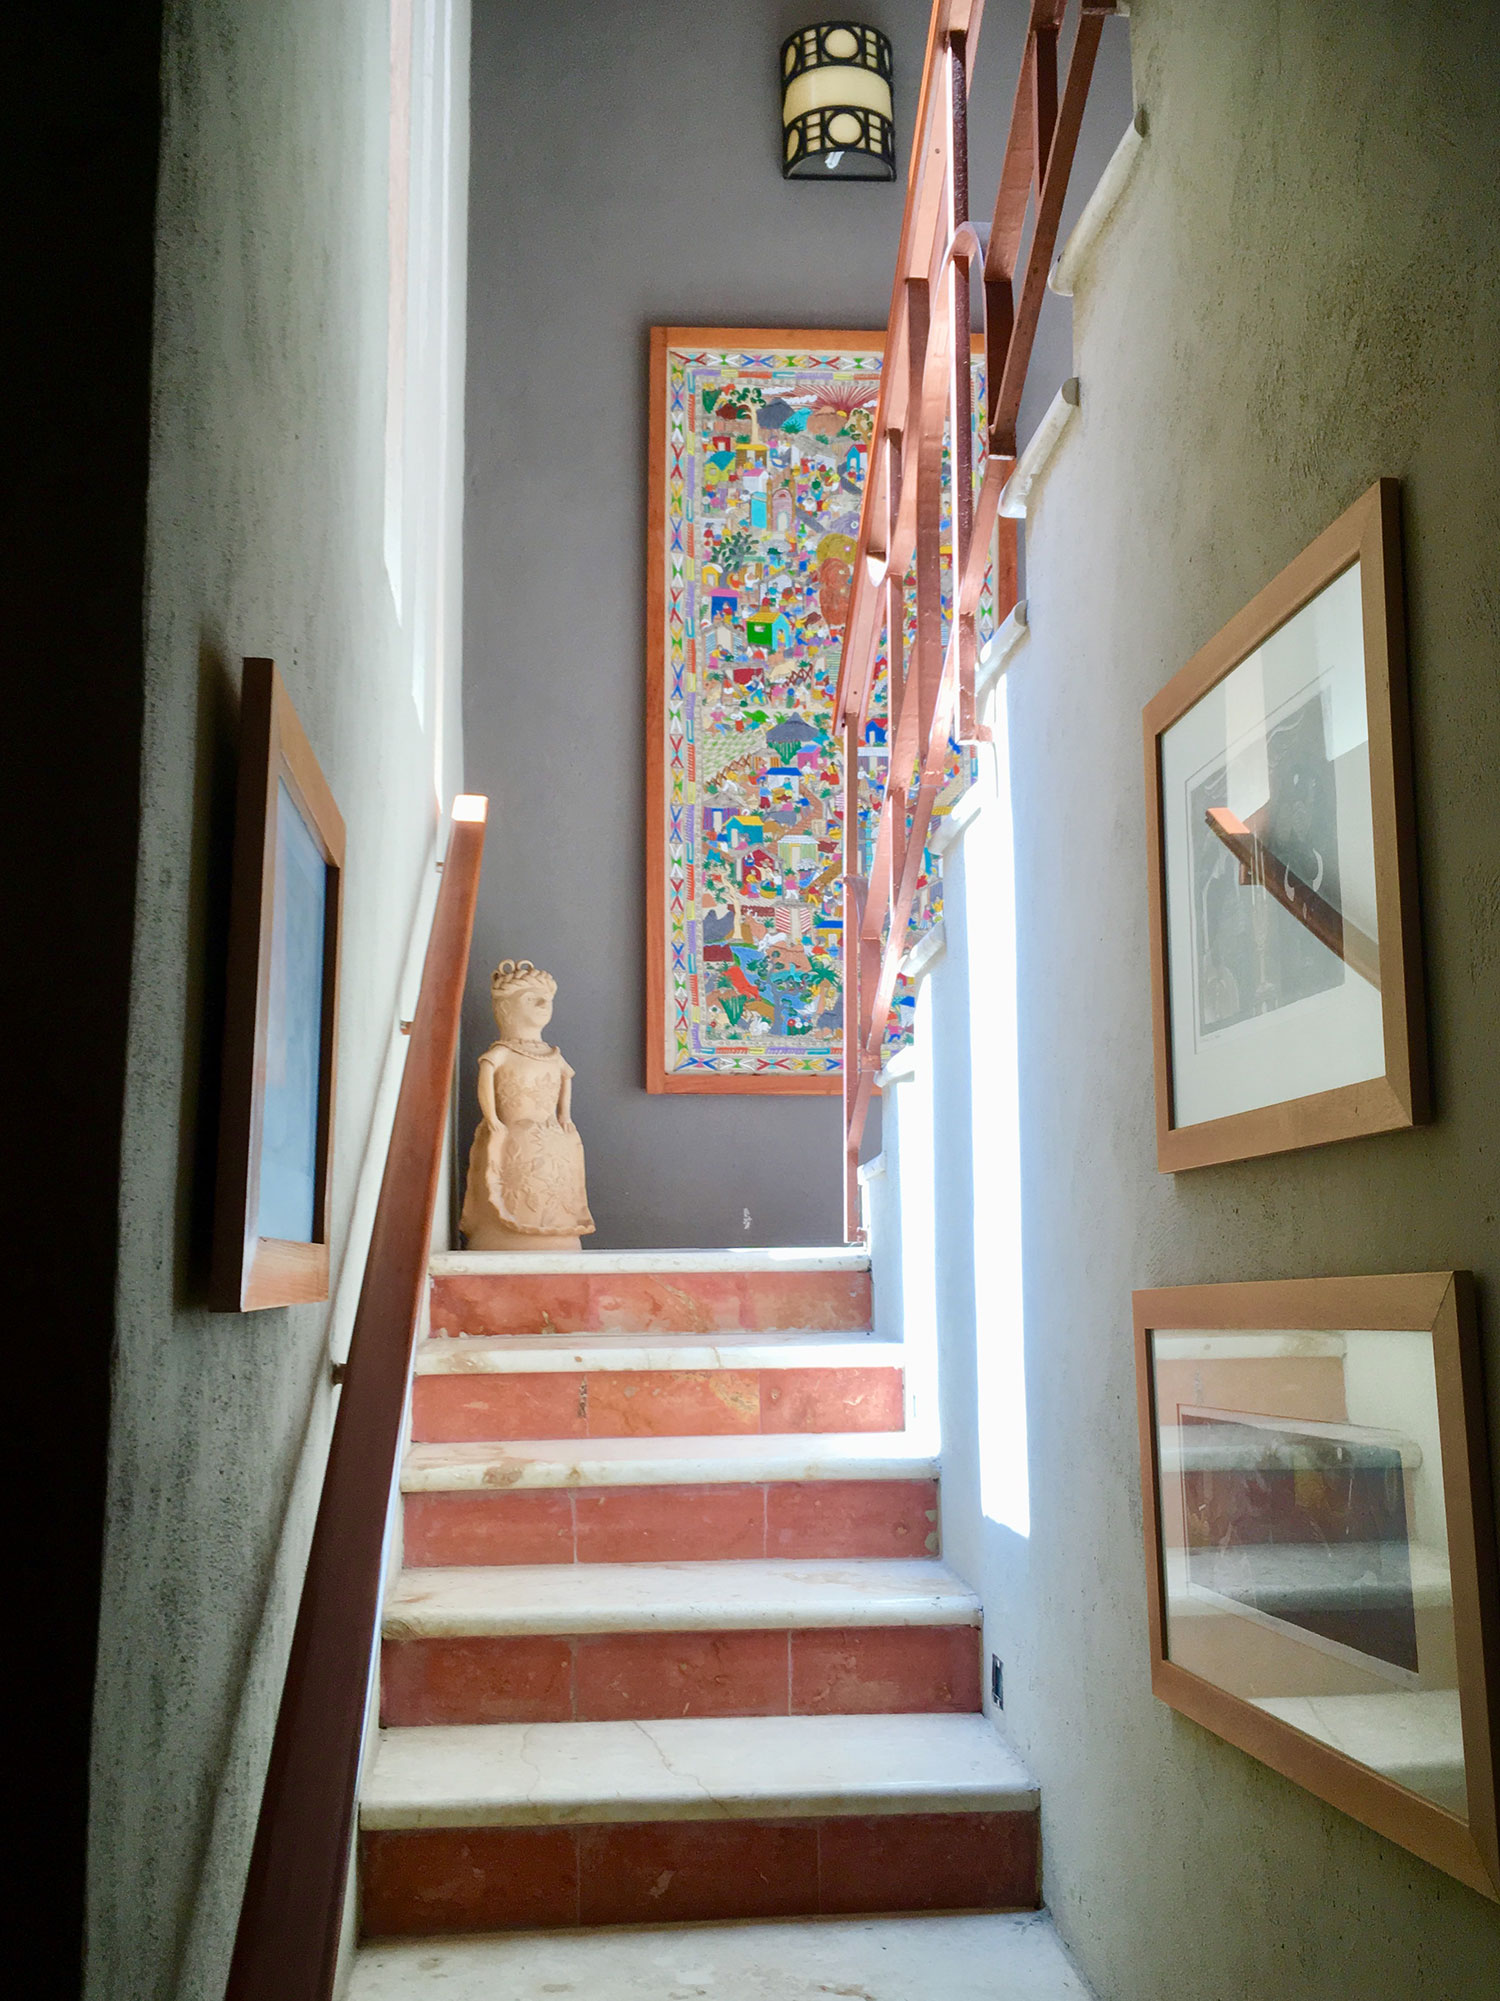 Staircase in the residential suite.